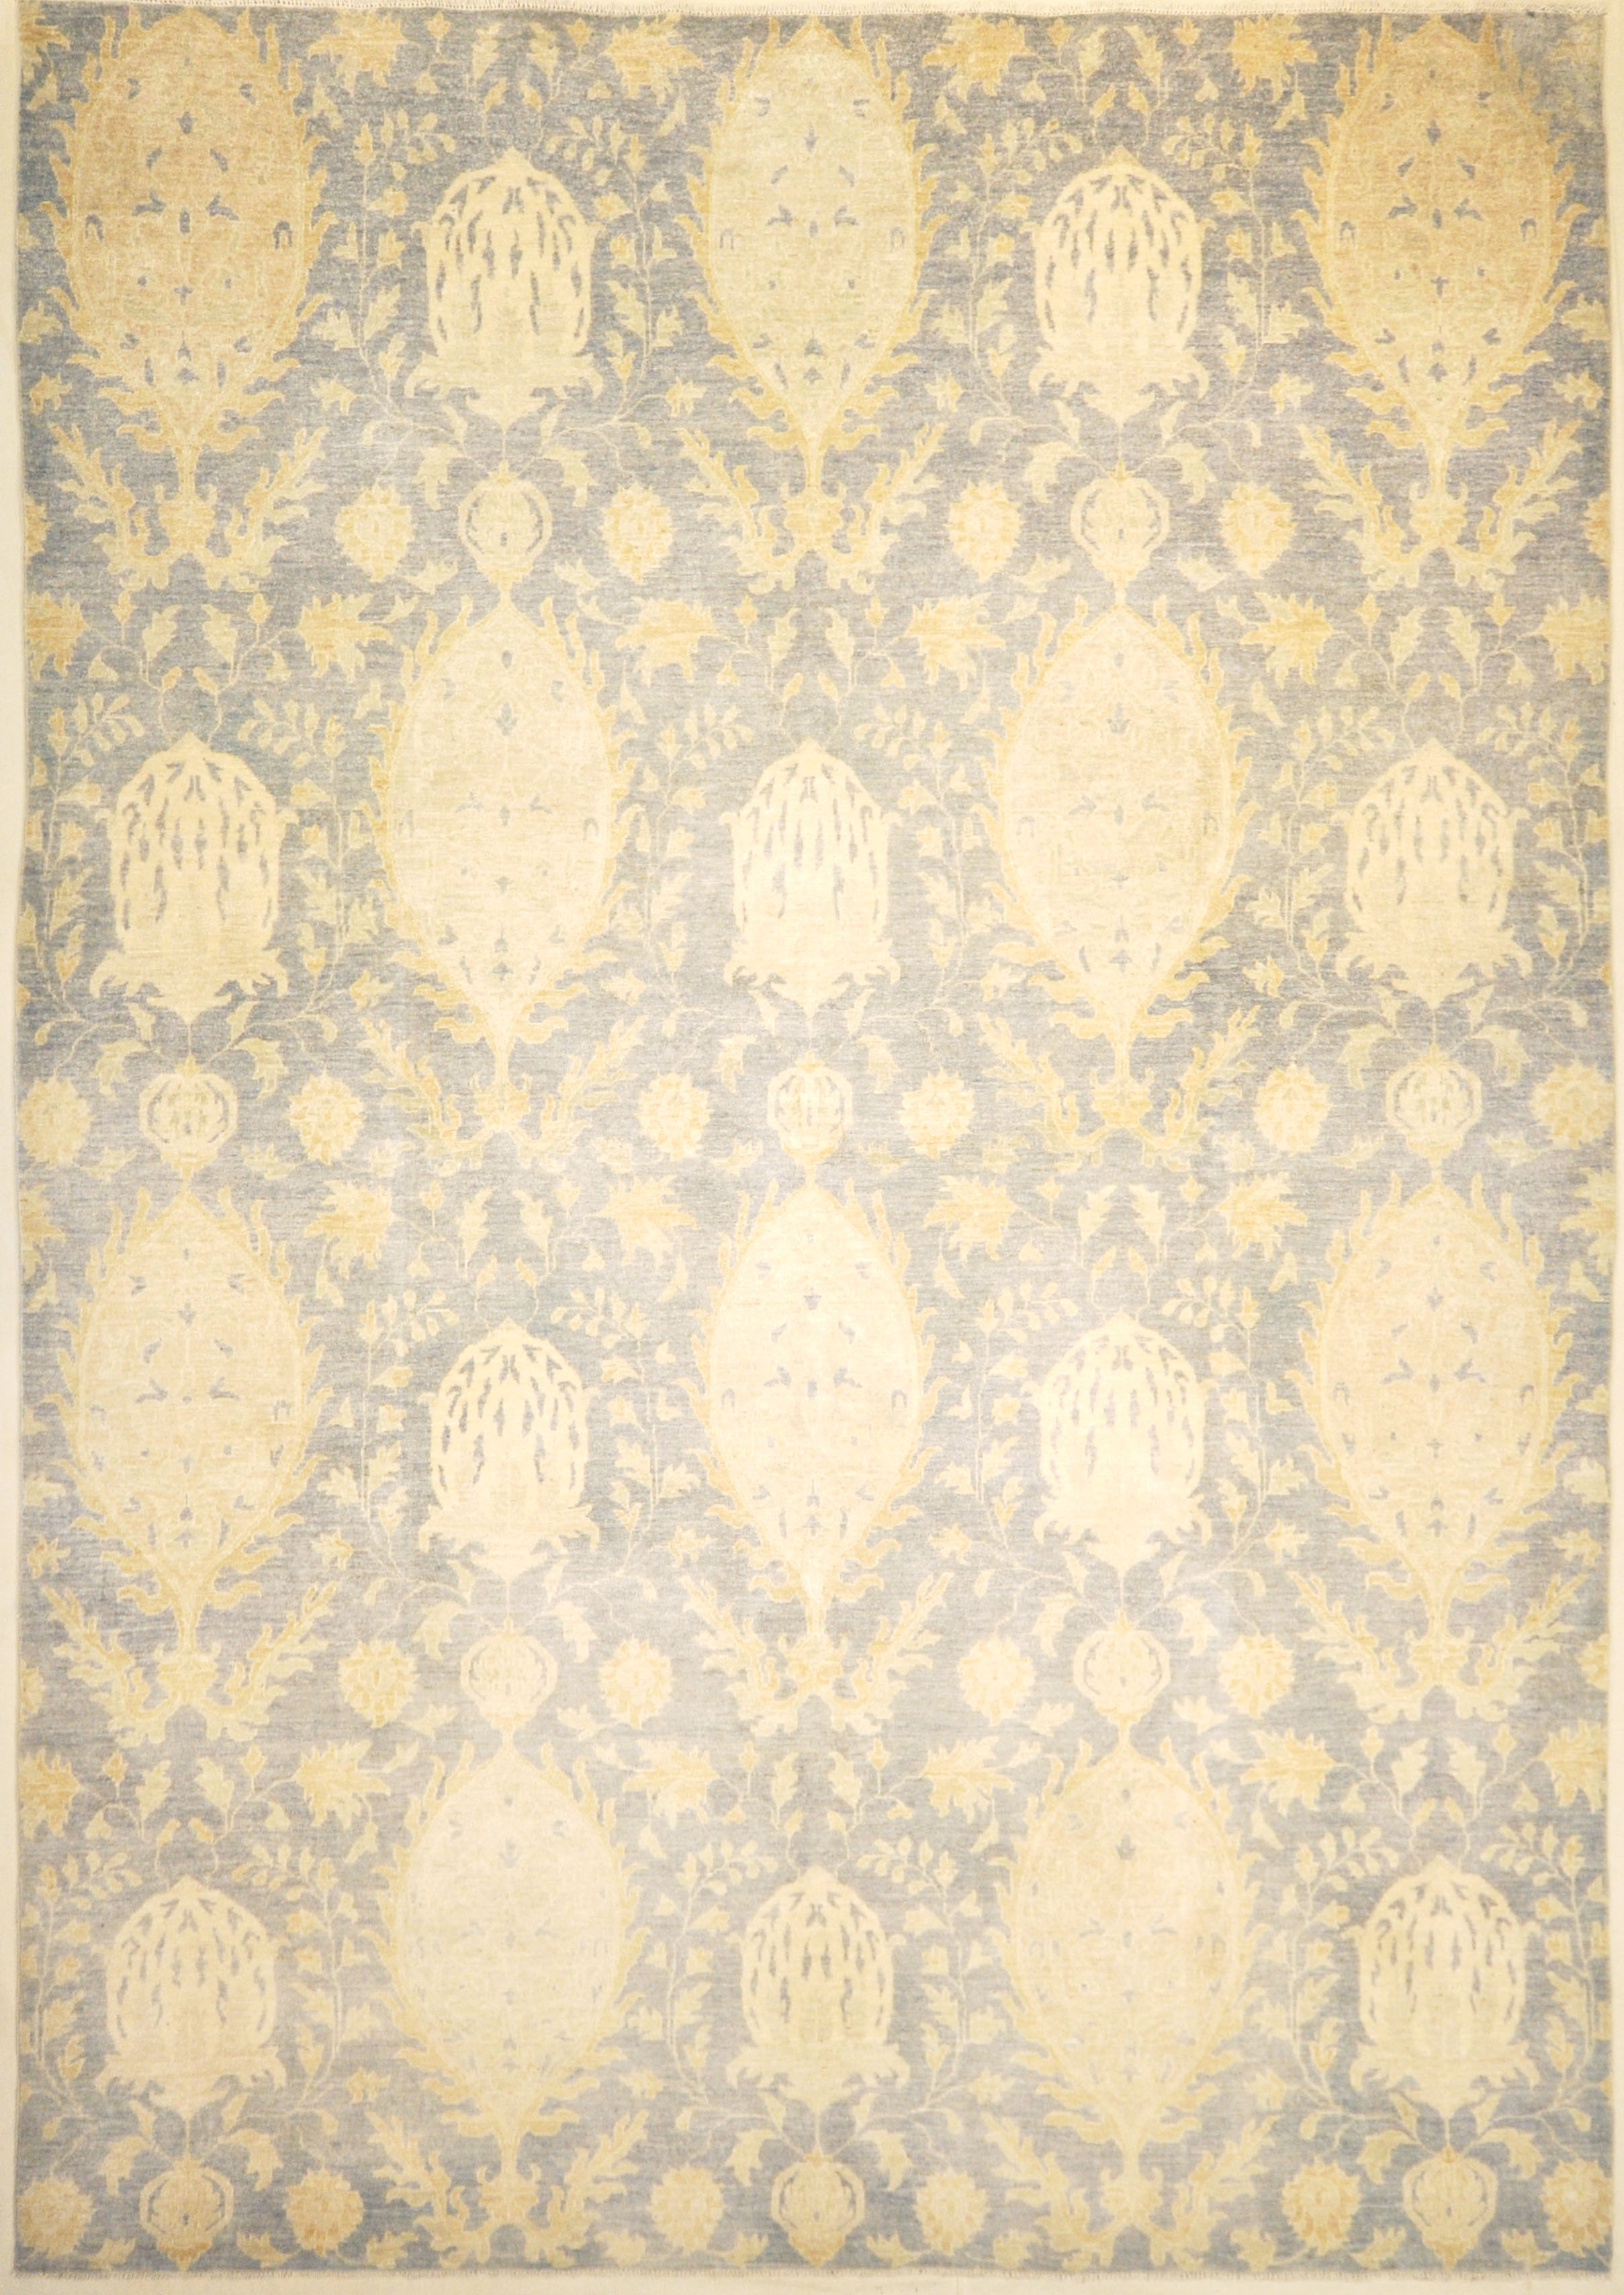 Finest Ziegler Oushak 30289. A piece of genuine, woven, authentic carpet design sold by Santa Barbara Design Center, Rugs and More.